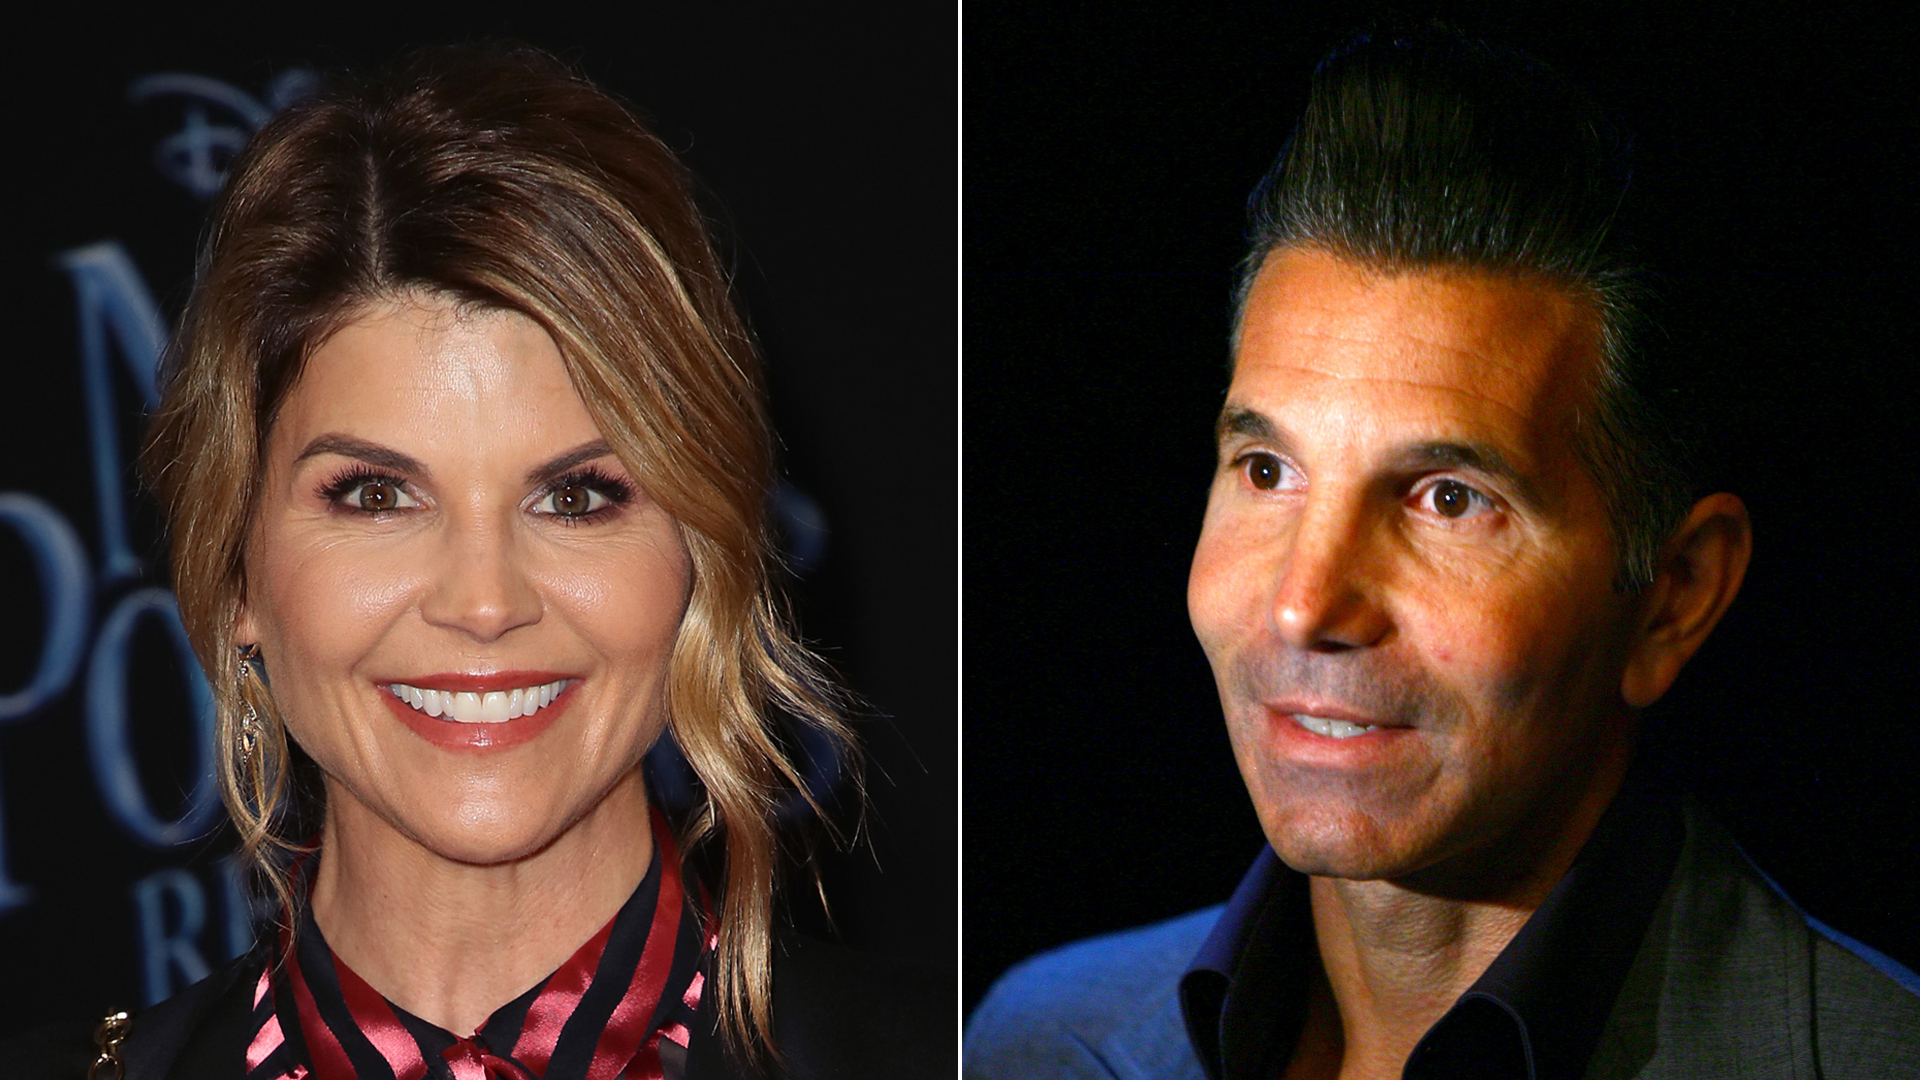 """From left: Lori Loughlin attends the """"Mary Poppins Returns"""" premiere at the El Capitan Theatre in Los Angeles on Nov. 29, 2018, and Mossimo Giannulli attends a Target fashion show in New York City on Nov. 6, 2007. (Credit: David Livingston / Scott Wintrow / Getty Images)"""